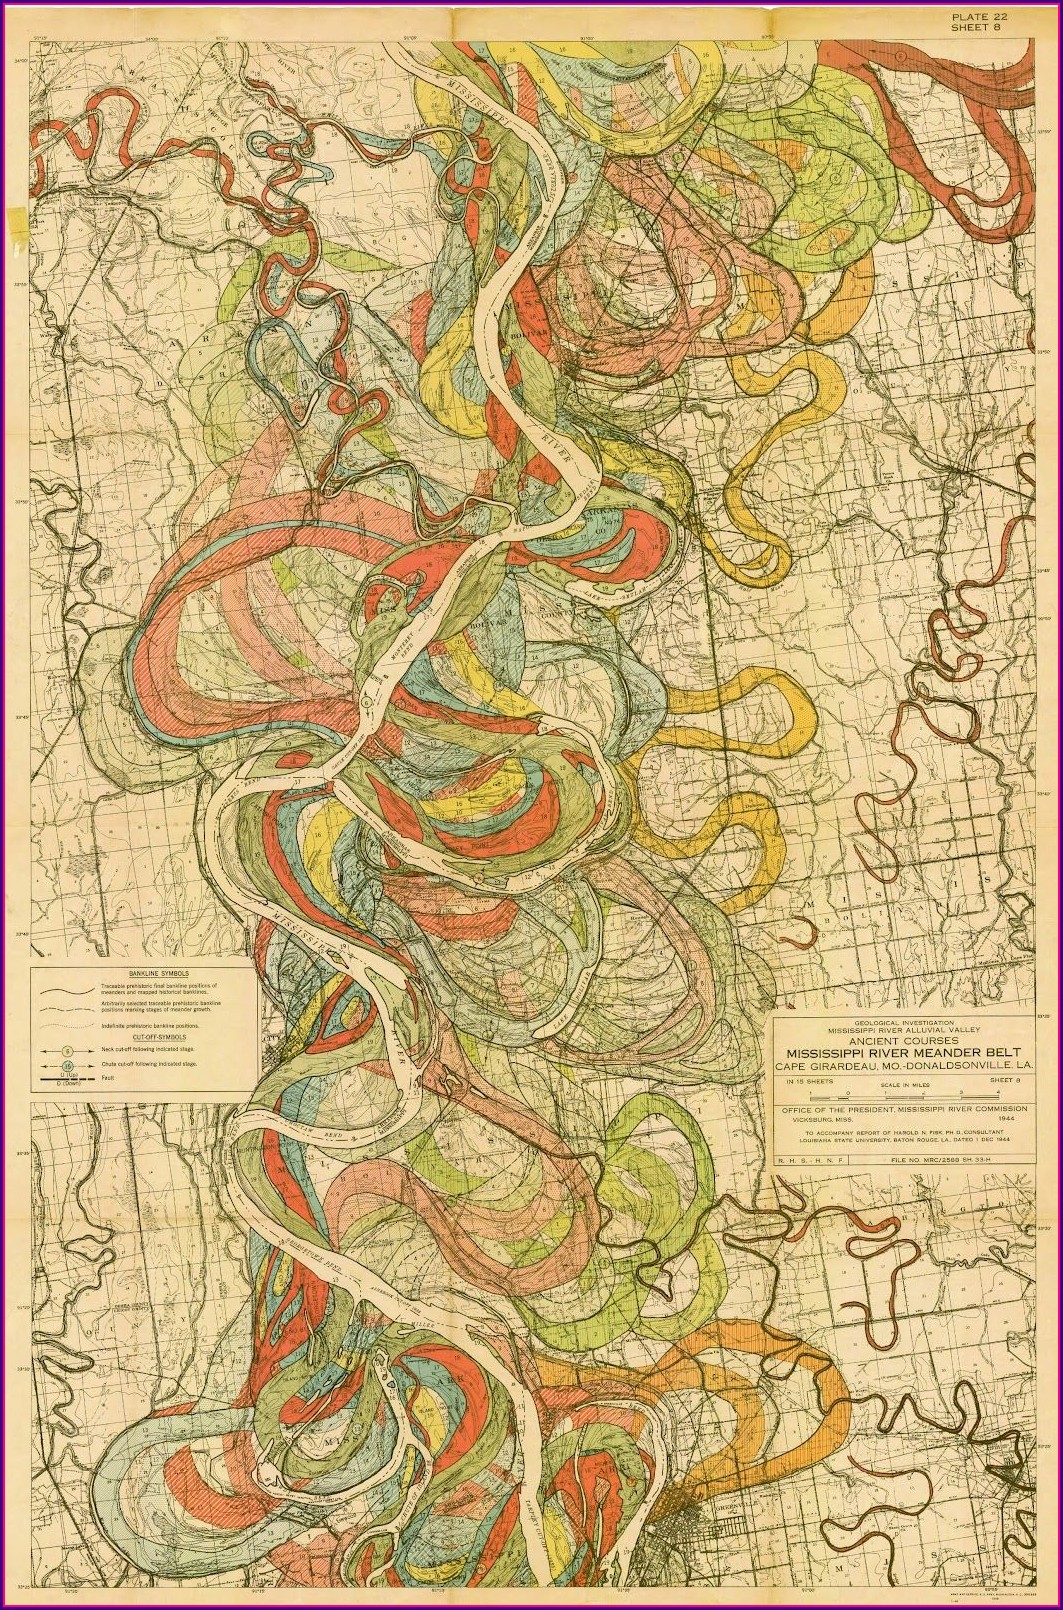 Mississippi River Floodplain Map